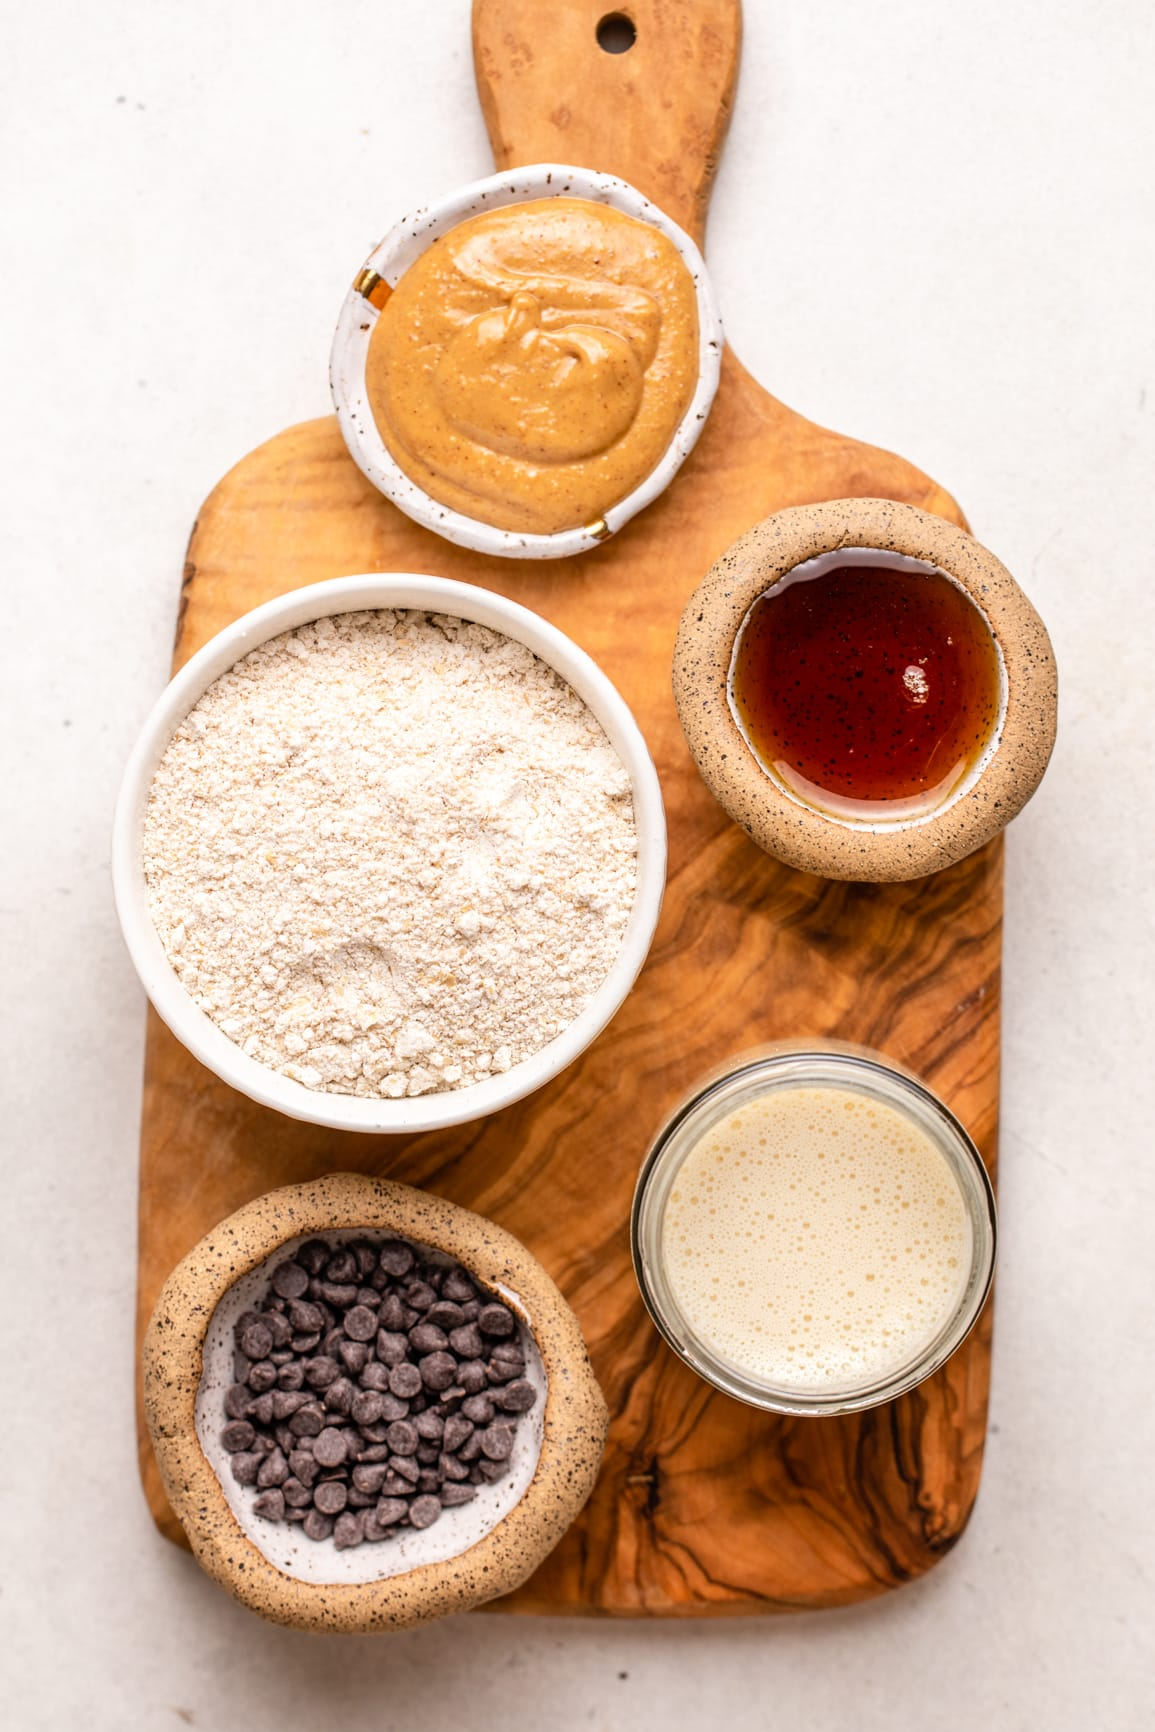 ingredients for pancakes in small containers arranged on wood cutting board